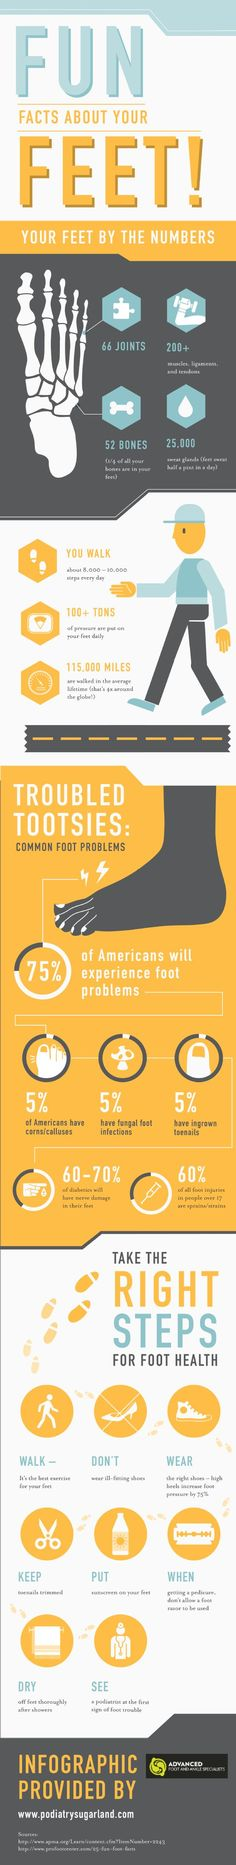 Did you know that there are more than 200 muscles, ligaments, and tendons in the feet? That is why so many people suffer from foot problems! #podiatry